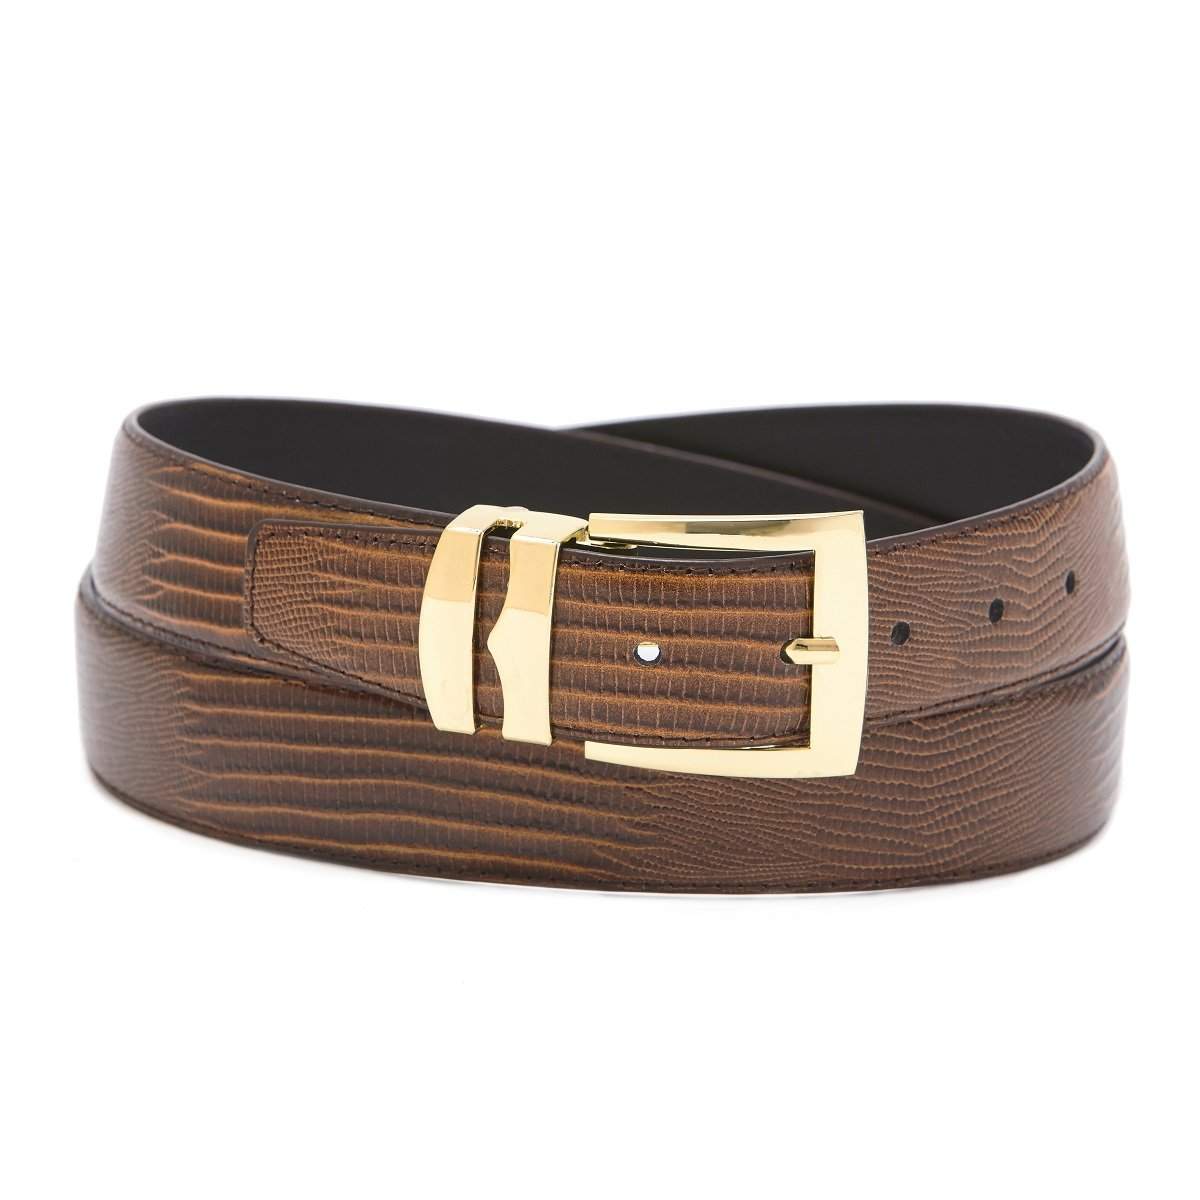 Mens Bonded Leather Belt in Solid Colors LIZARD Skin Pattern Gold-Tone Buckle